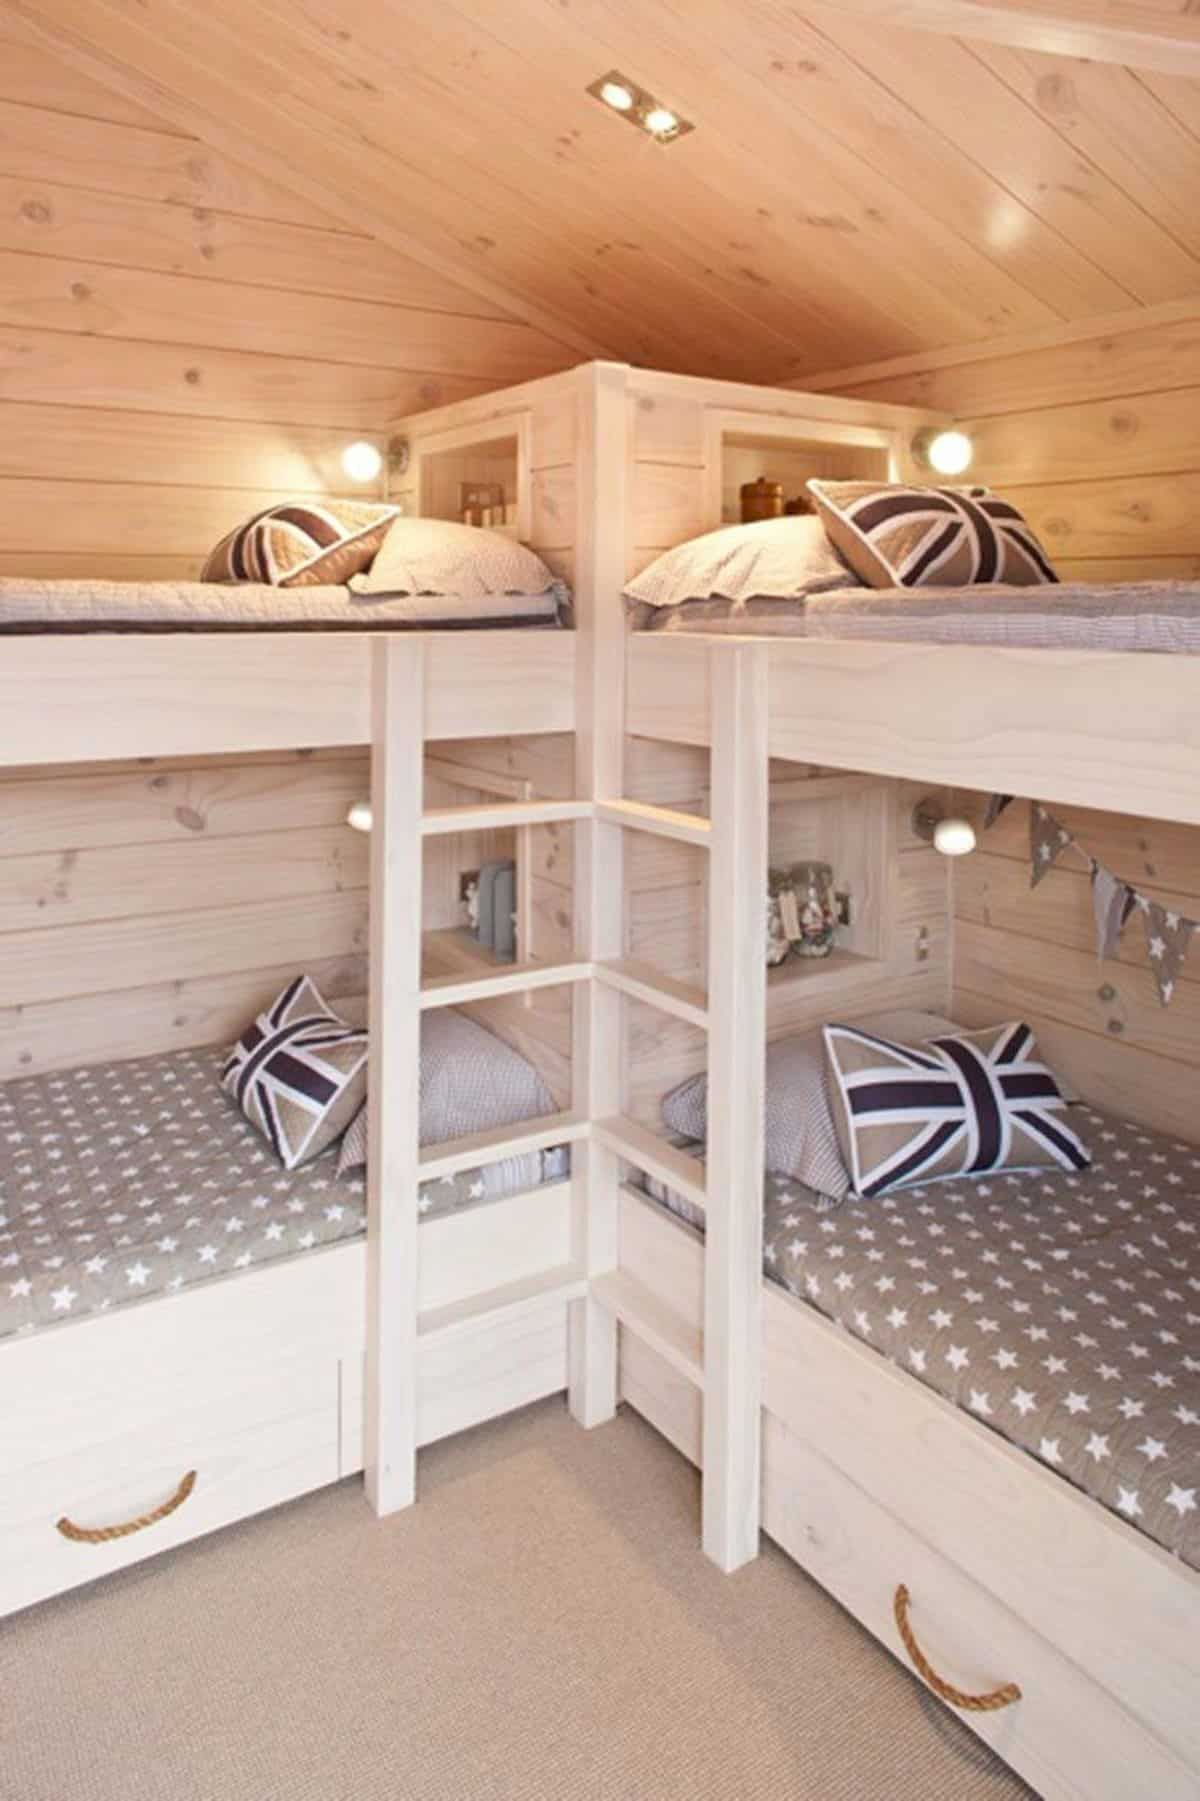 21 Space Saving Corner Bunk Bed Ideas Corner Bunk Beds Bunk Bed Designs Bunk Beds With Stairs